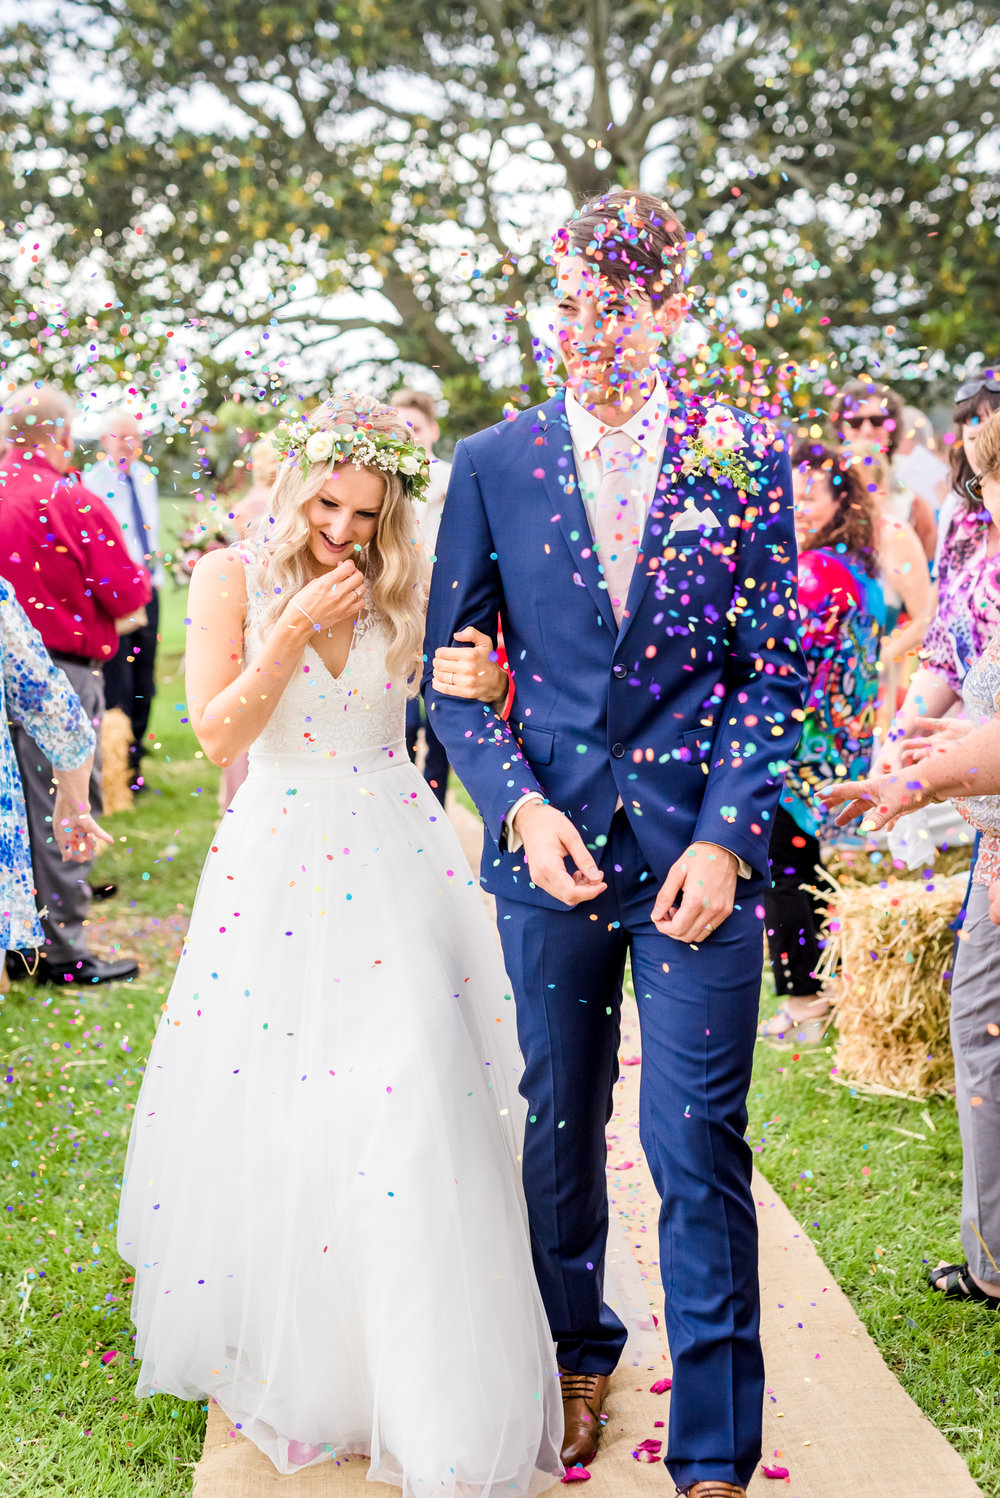 - That moment the boys think its a good idea to throw an entire bucket of confetti at your face...